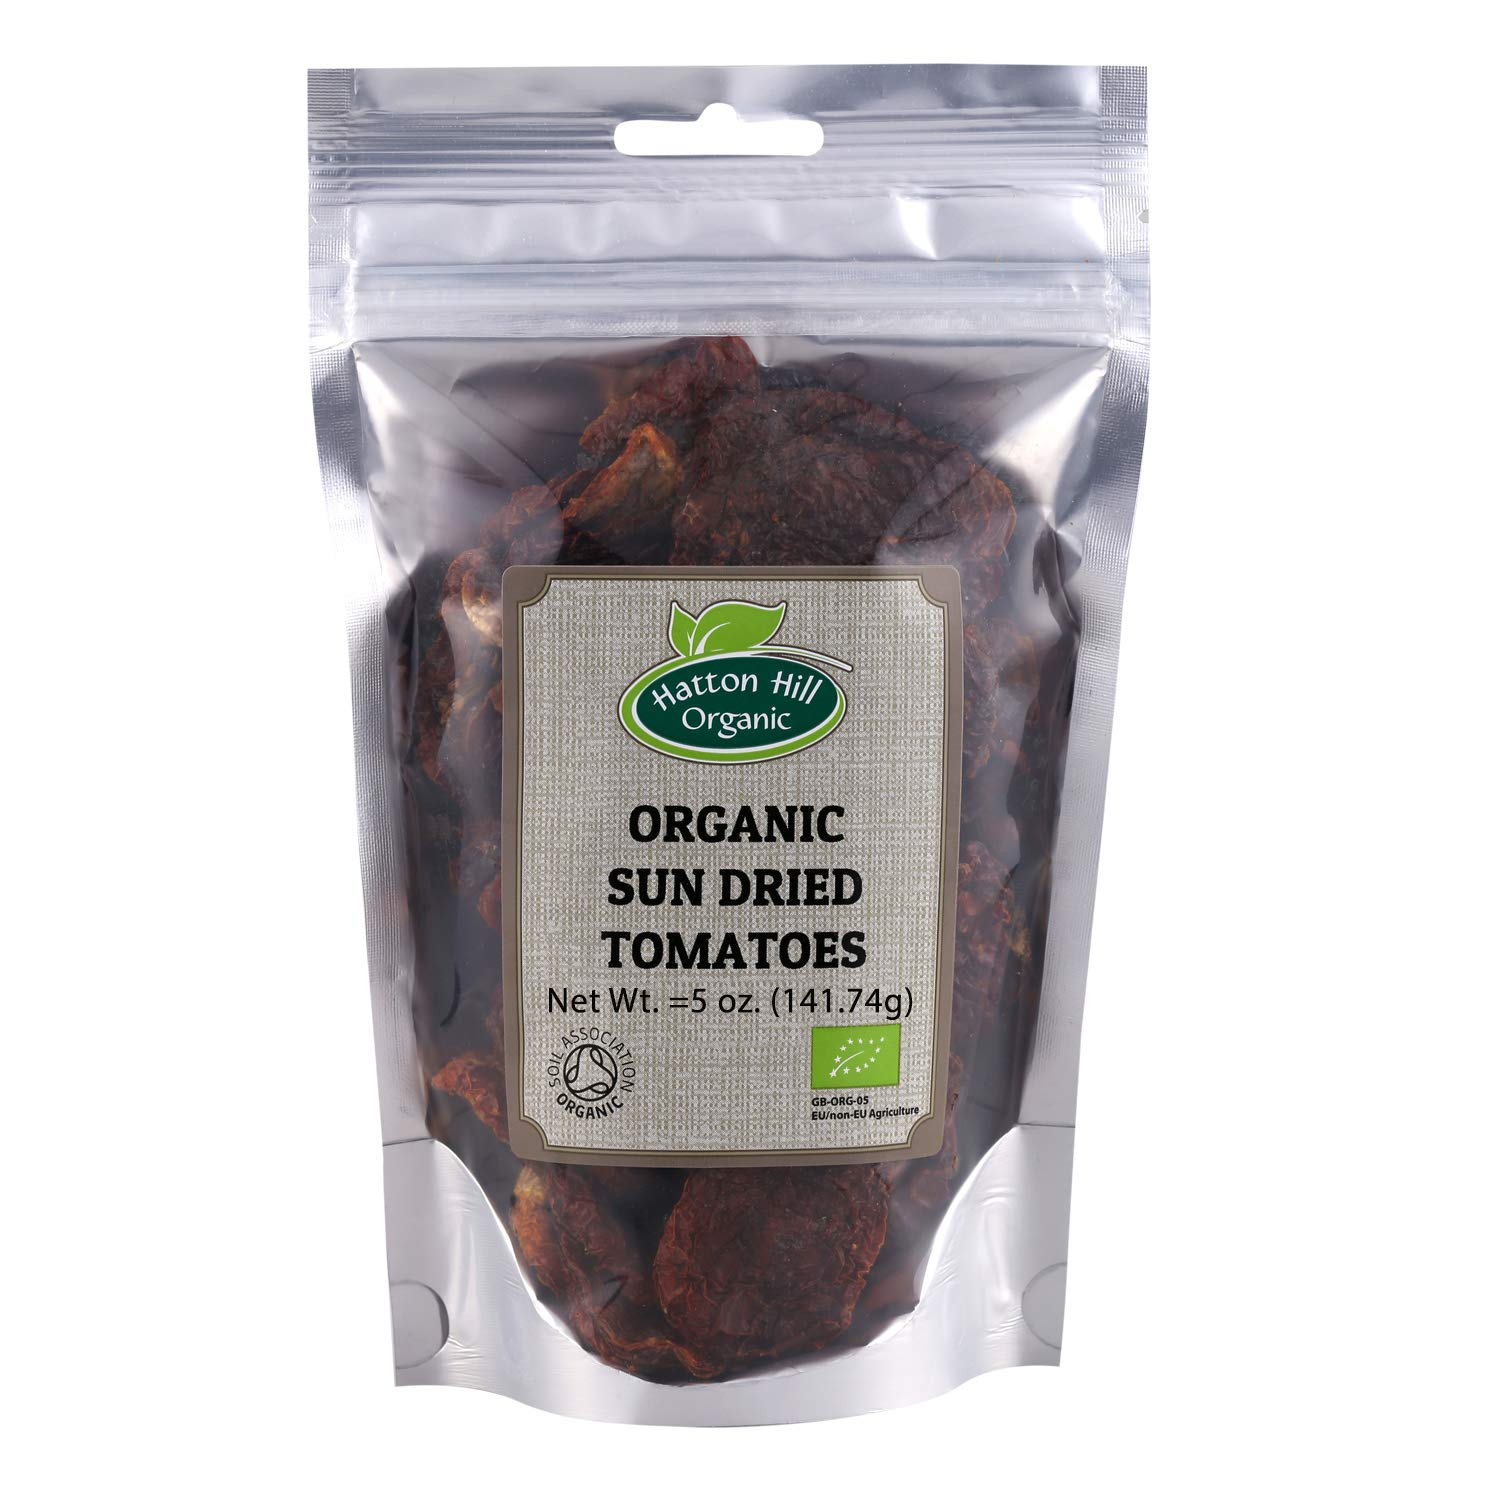 Organic Sun Dried Tomatoes Halves (Salted) 5 oz. by Hatton Hill Organic